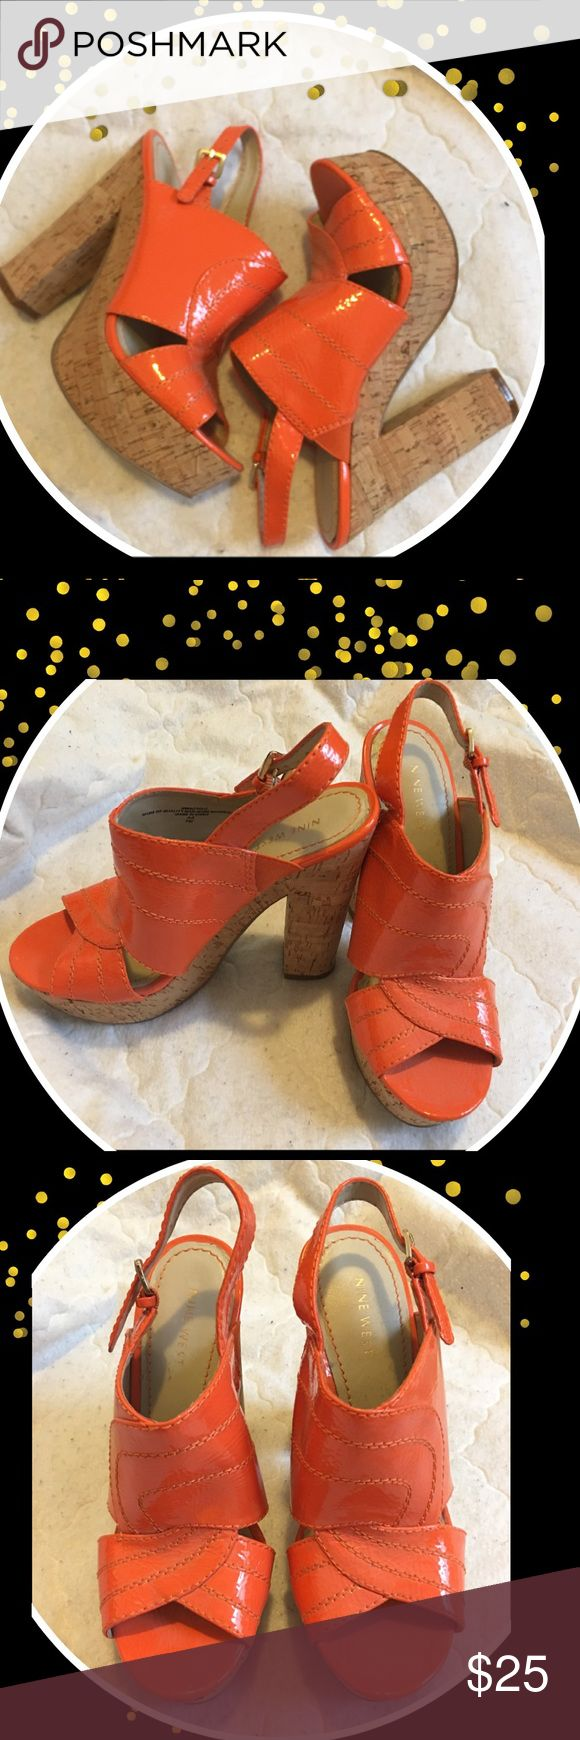 """Nine West orange shoes Gently used . Nice,Nine West Size 7M Orange/Offwhite Shoes  Maker/Markings: Nine West  Size; 7M ; Good-Condition  Approximate Measurements Toe to Heel:9"""" Width:3"""" Heel Height:6"""" Boot Height:  Color Orange/Offwhite Nine West Shoes Sandals"""